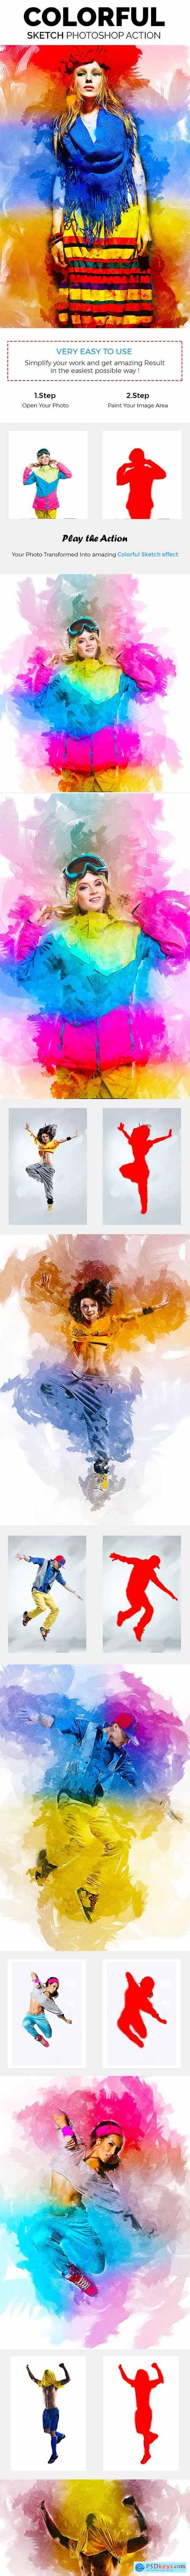 Colorful Sketch Photoshop Action 21216337